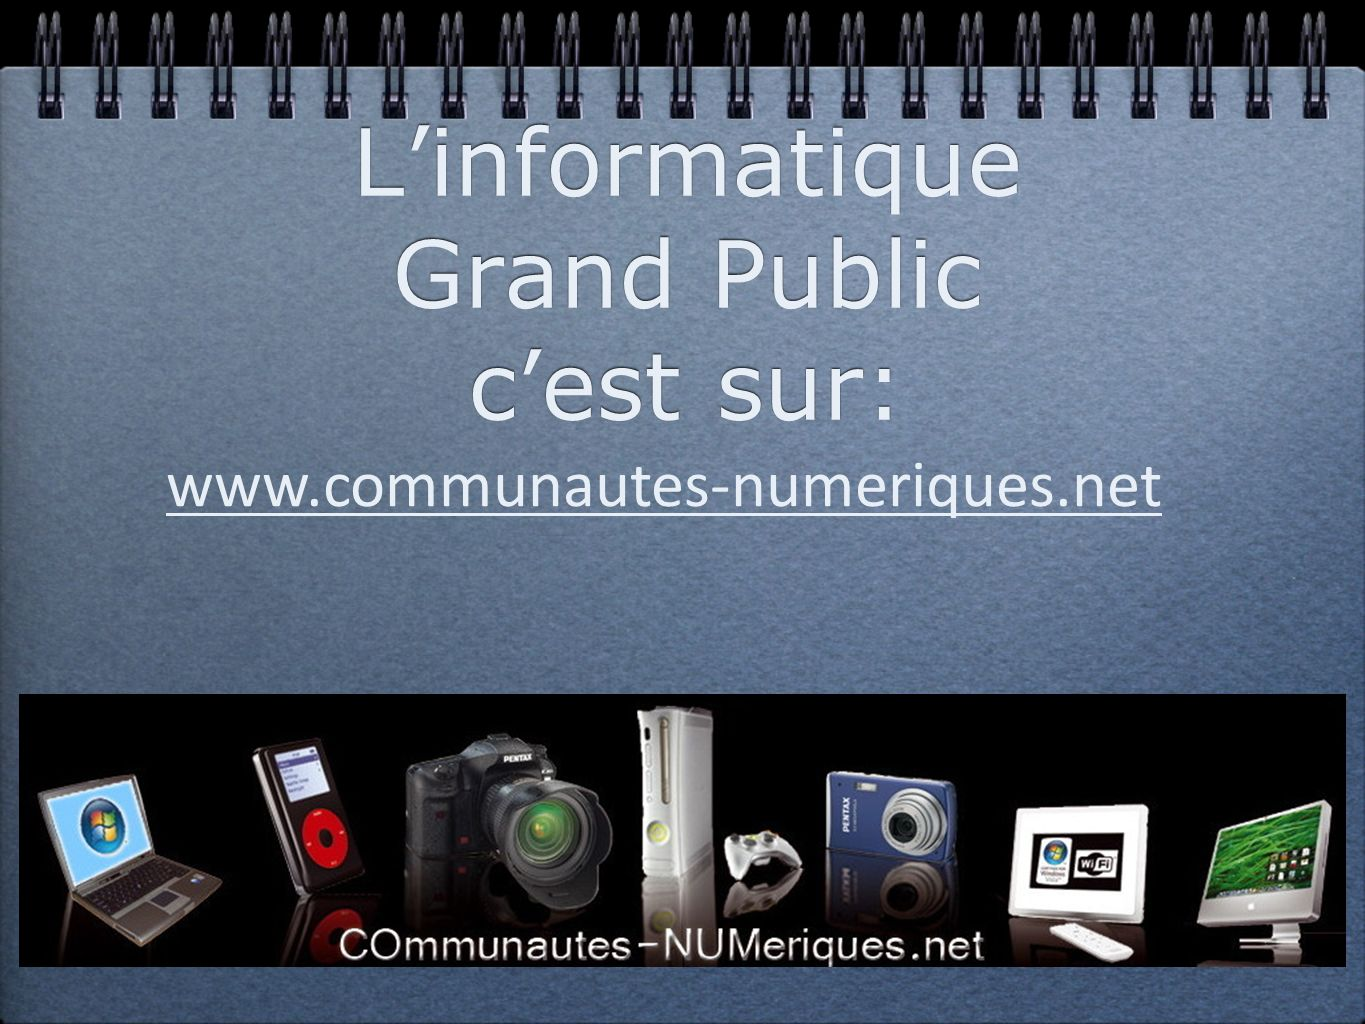 Linformatique Grand Public cest sur: